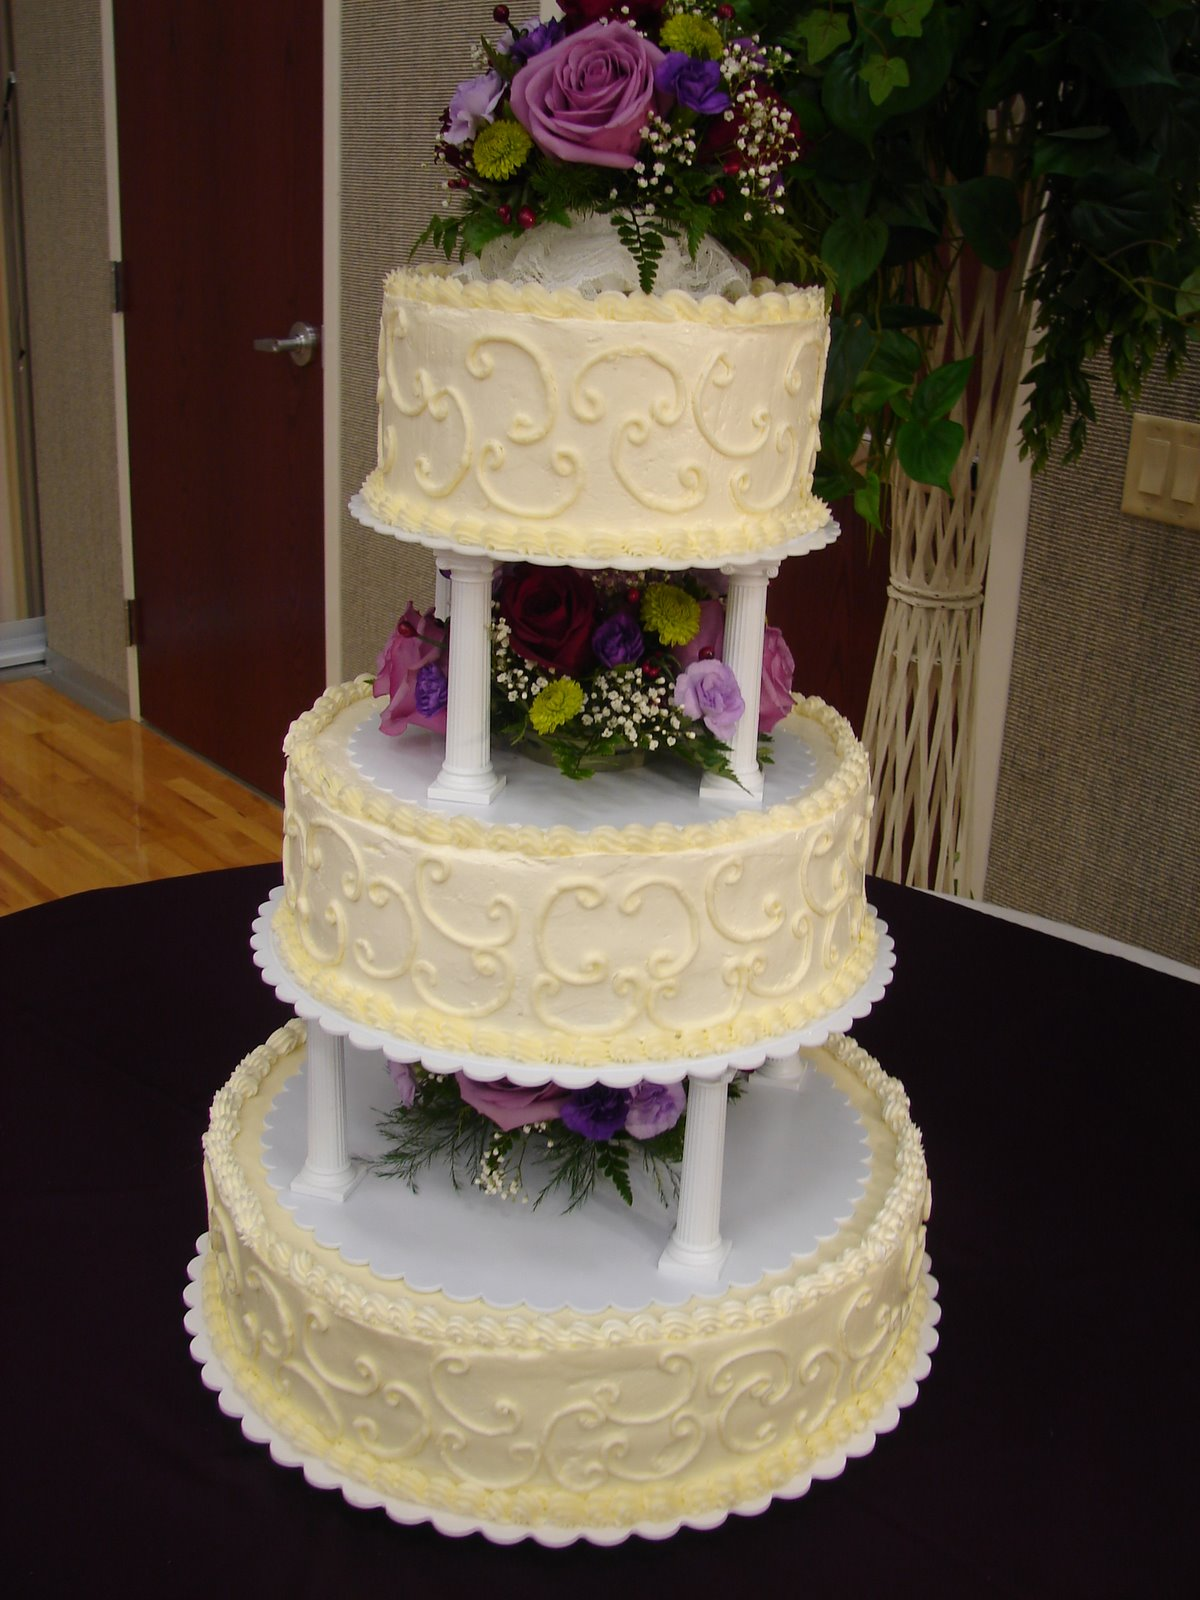 7 3 Tier Wedding Cakes With Scrolling Photo Walmart 2 Tier